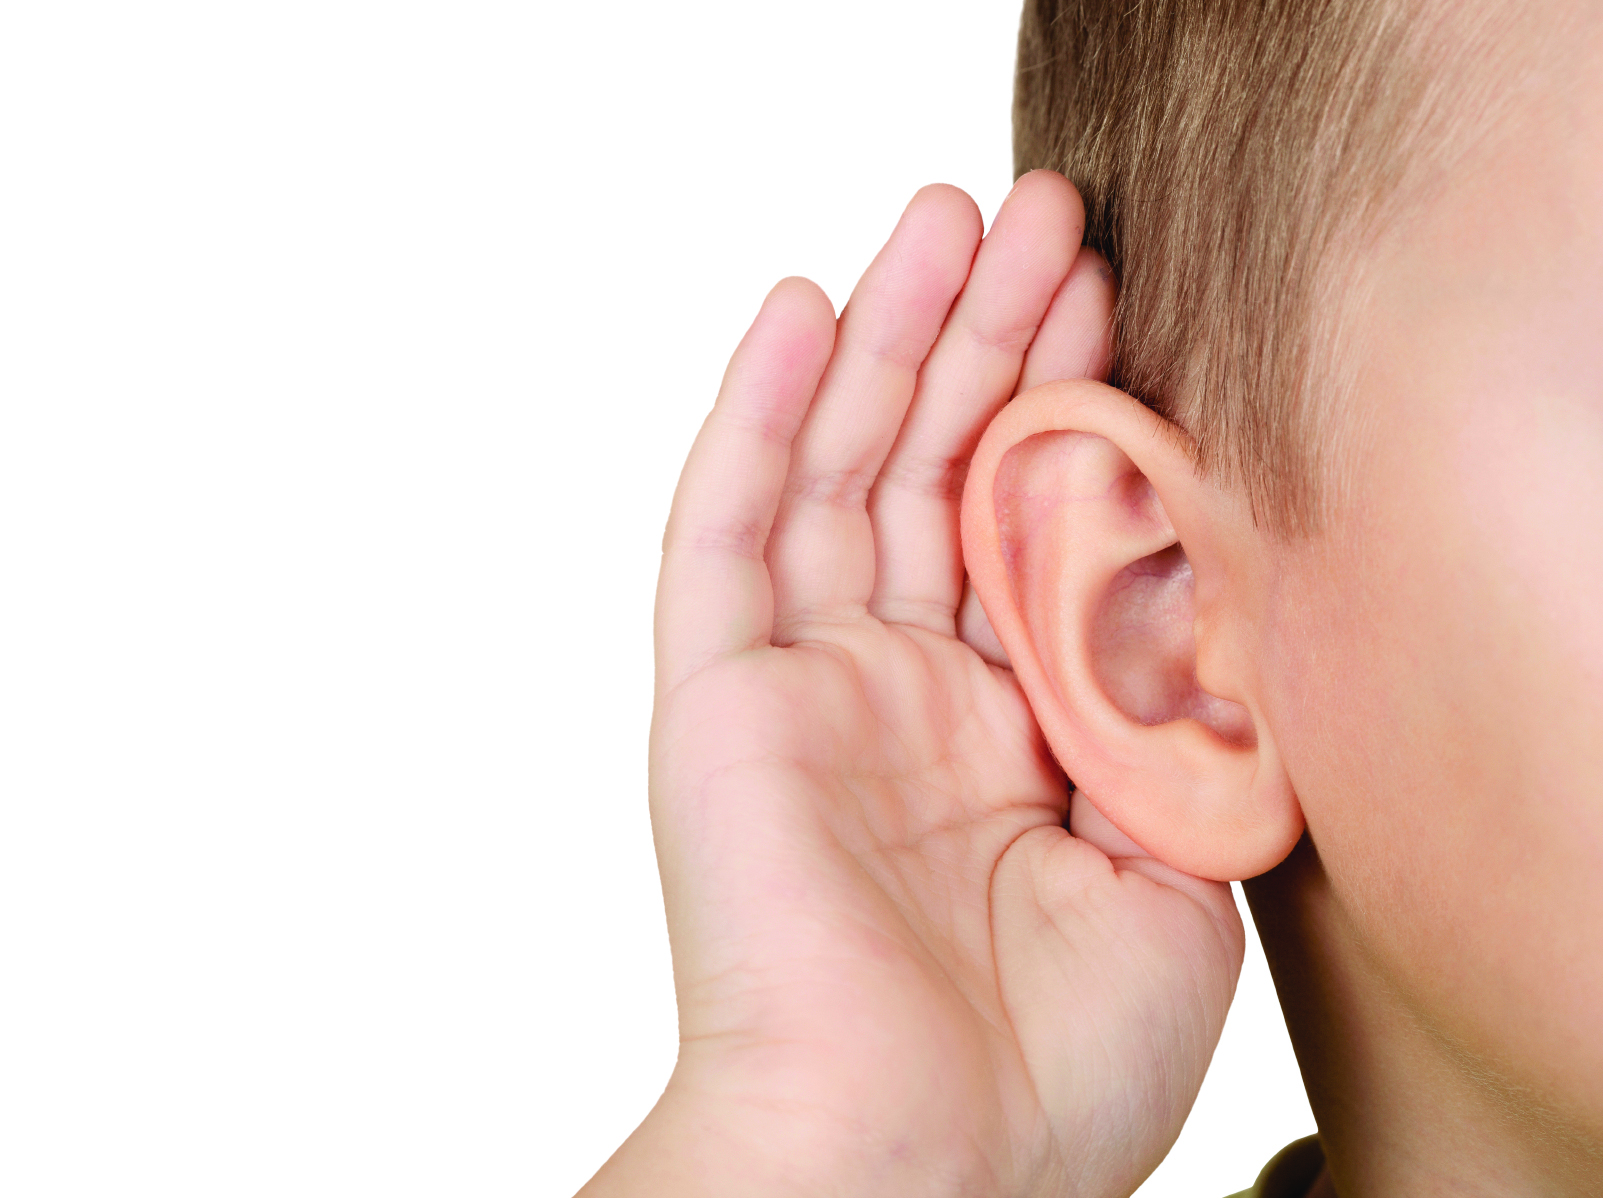 """A """"phoneme"""" is the smallest unit of speech sound. For example, the word pan has three letters and three phonemes (p/a/n). The word sheep has five letters but just three sounds, or phonemes (sh/ee/p).  Phonemic awareness is the ability to hear, identify, and manipulate the individual sounds – phonemes – in spoken words. This is a critical stage in a child's literacy development.  A child has phonemic awareness when the child can demonstrate an awareness of individual phonemes and can manipulate them in different ways. We see evidence of this important milestone when children can rhyme one word with another (pan - fan), list words that begin with the same sound (bus, boy, bye) or end with the same sound (ship, jeep, and shop), break words into individual phonemes, and blend phonemes together to make a familiar word.  Listen to the phonemes  here !"""